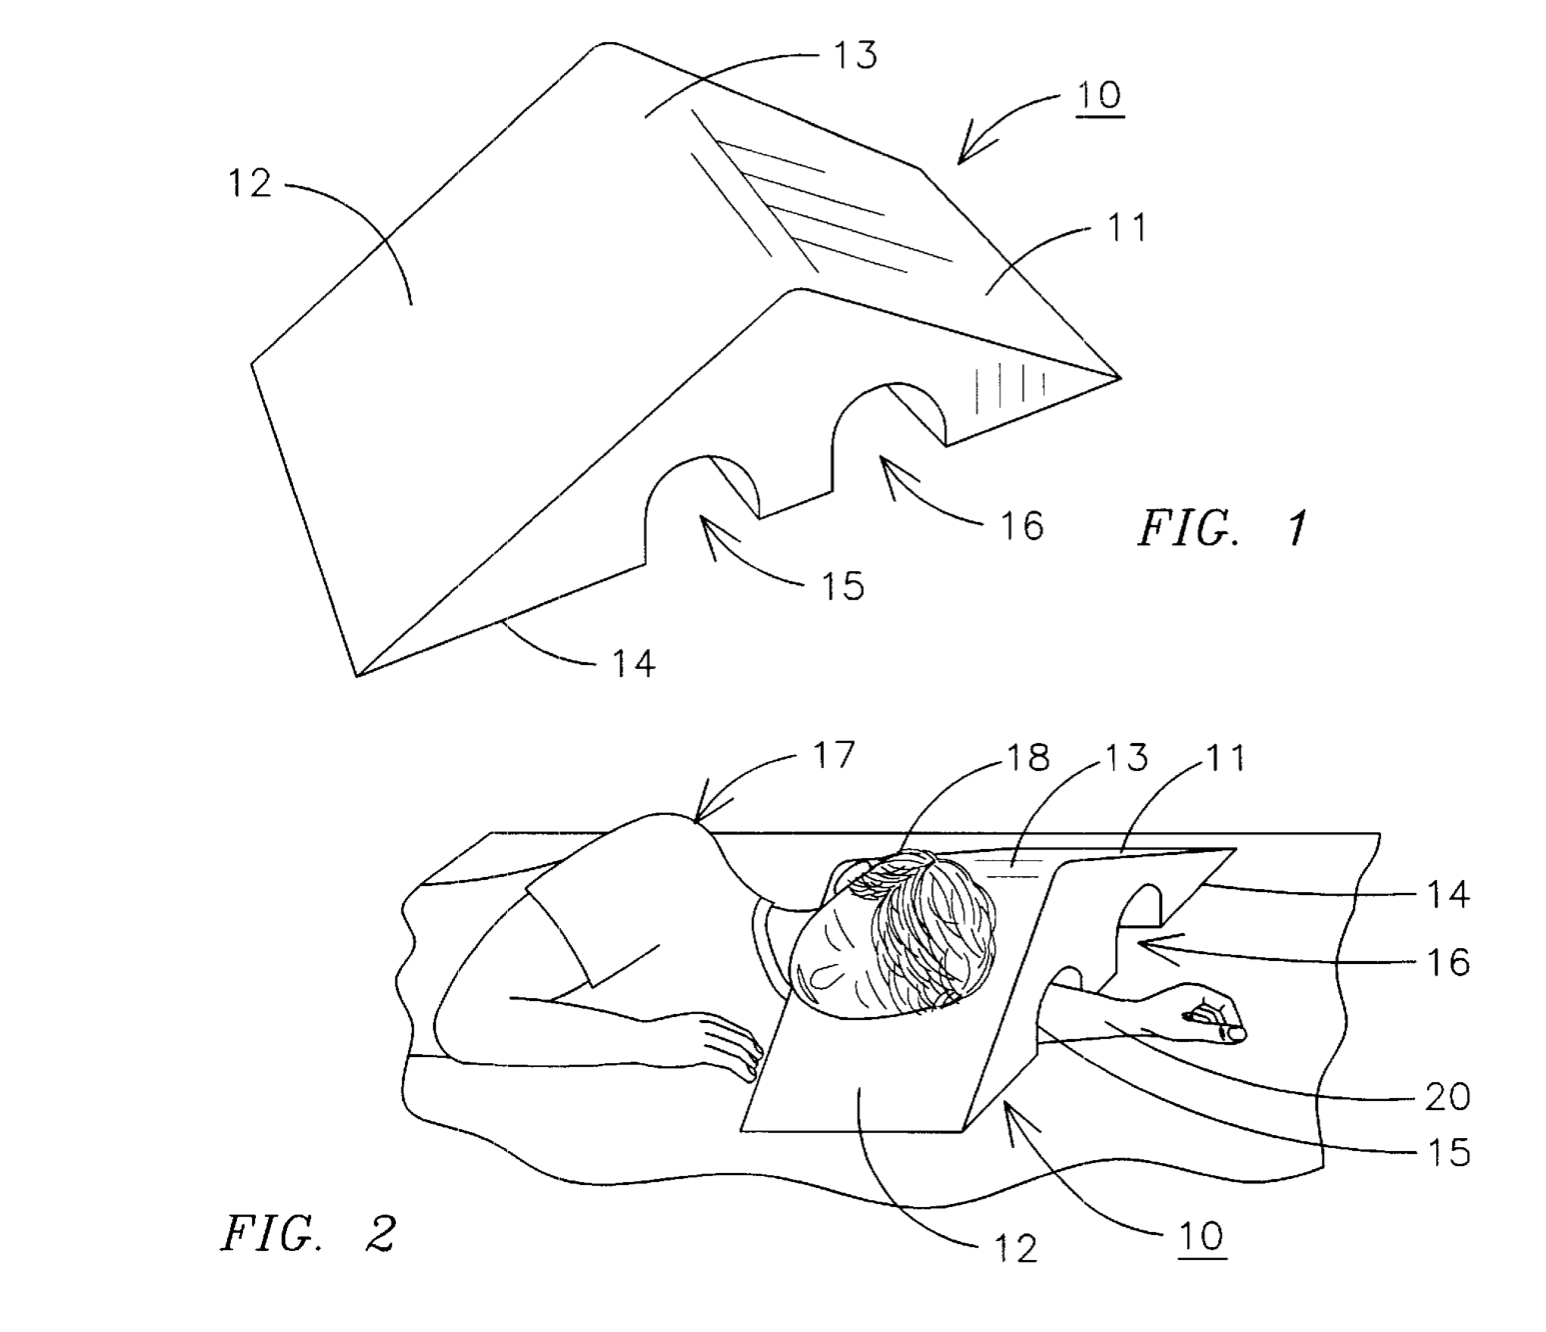 5 Absurd Sleep Inventions That Somehow Got Patented